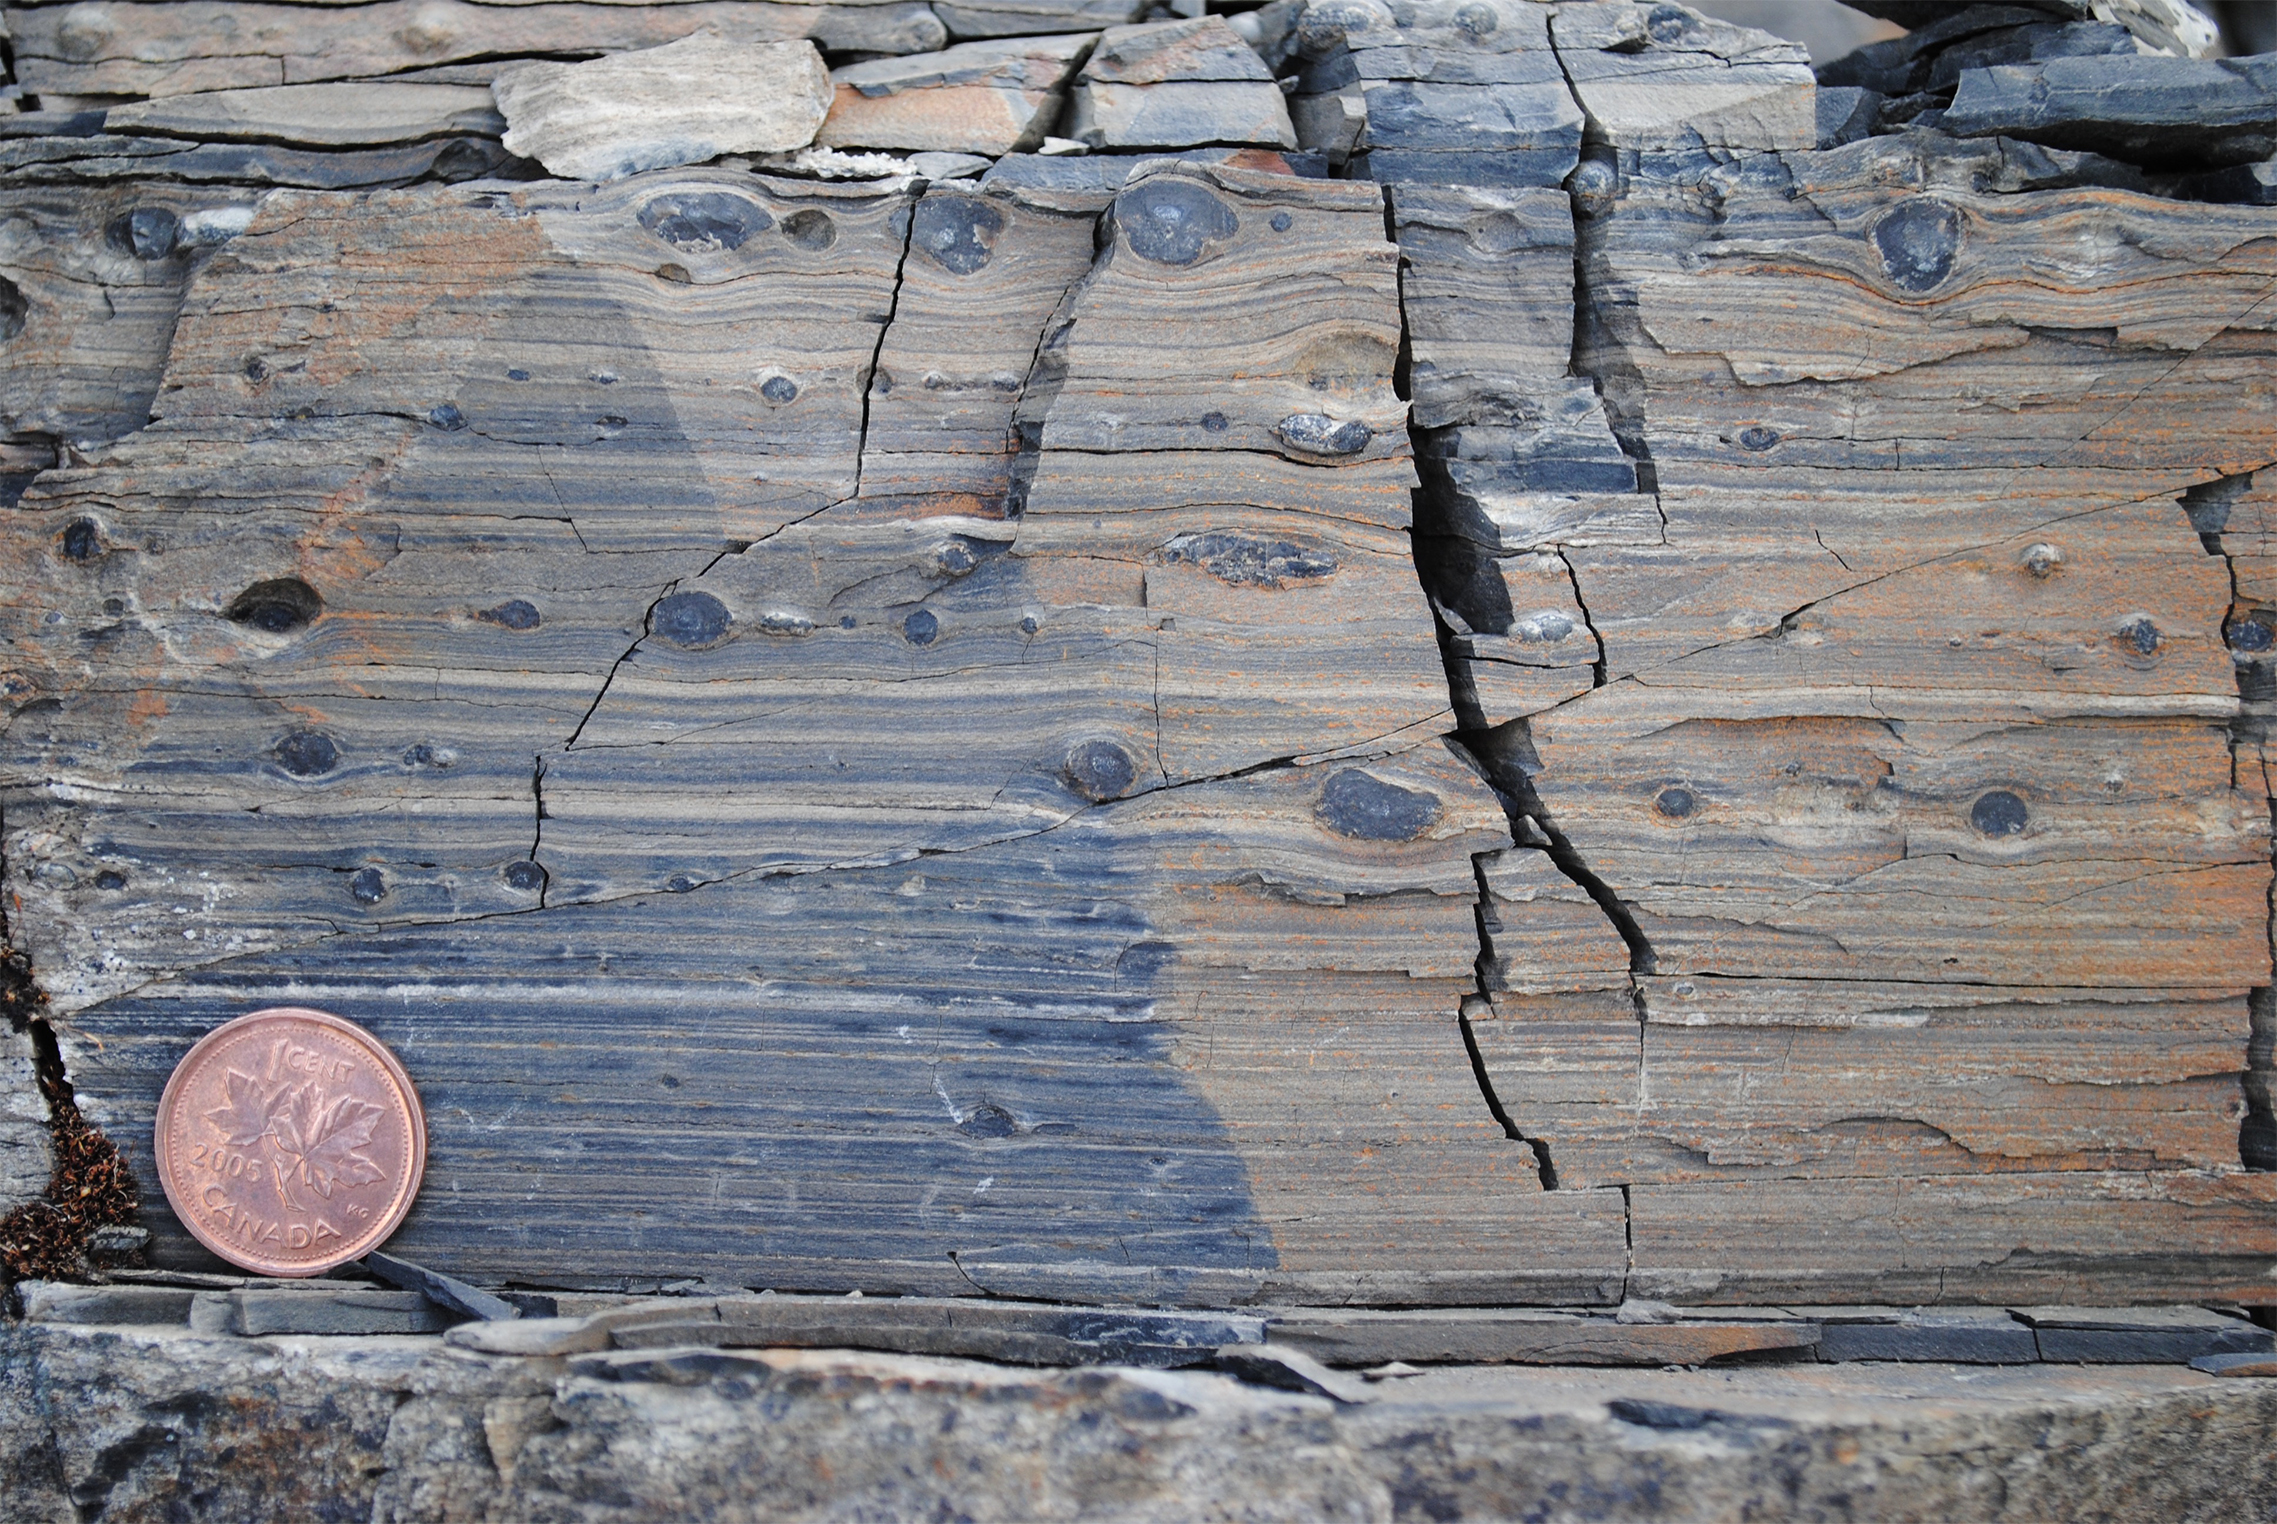 View of carbonate rocks from Mount Slipper, Yukon that contain apatitic scale microfossils. Fossils are found by dissolving the carbonate rocks in weak acid. Canadian penny for scale. Image credit: Justin V. Strauss